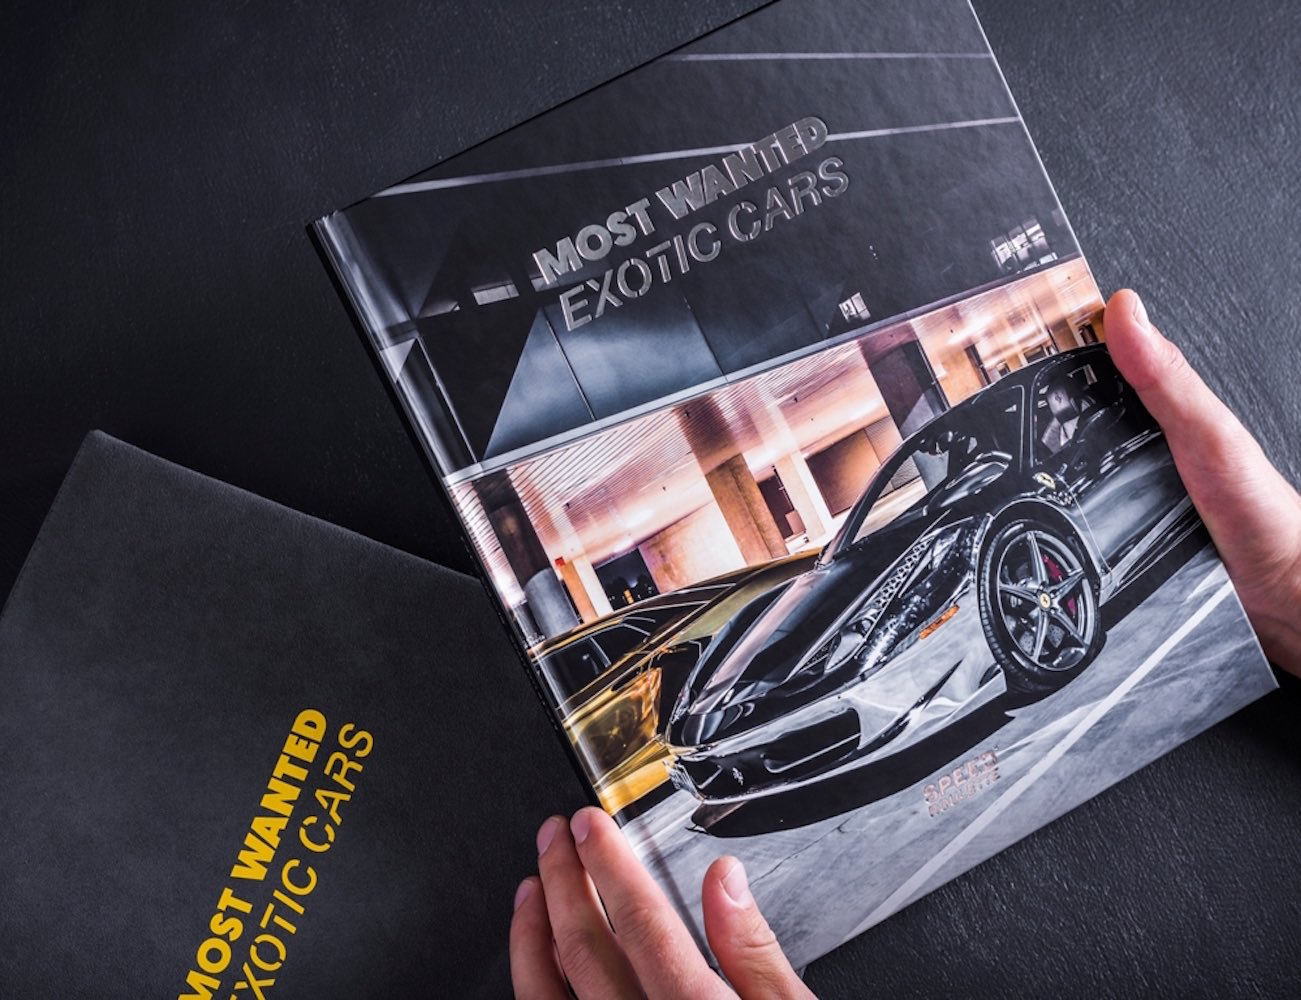 Most+Wanted+Exotic+Cars%3A+See+It%2C+Feel+It%2C+Hear+It%2C+Smell+It